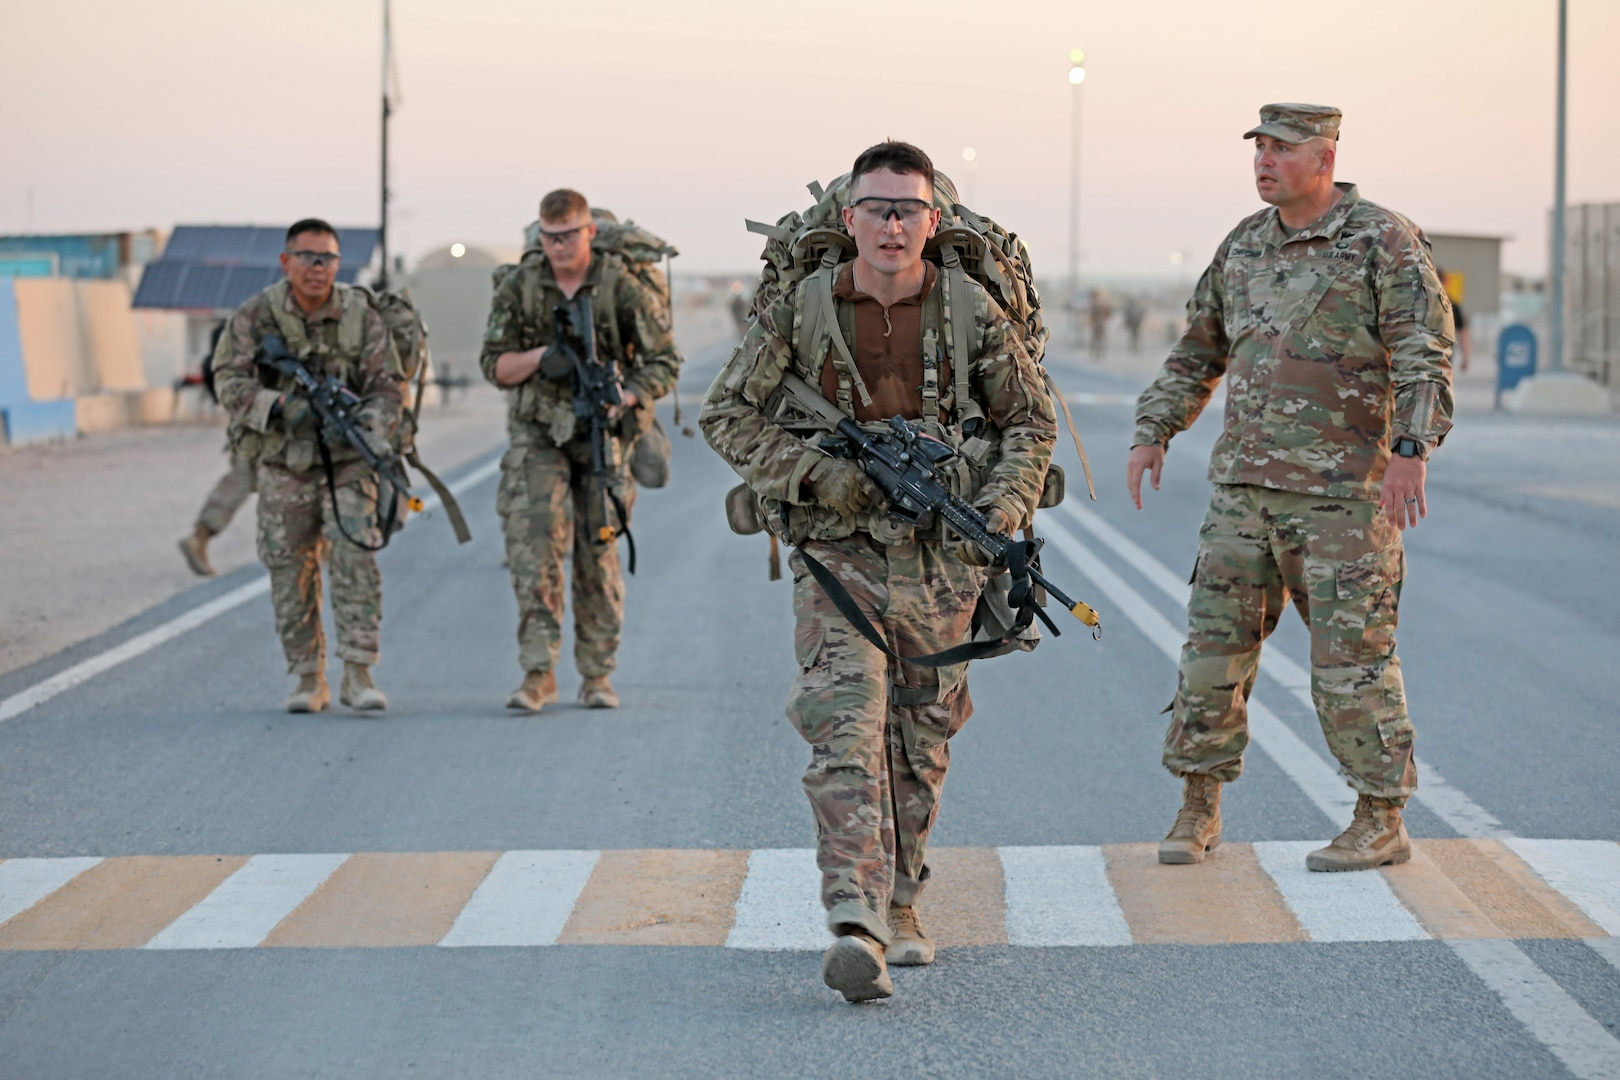 Infantry Soldiers deployed in the U.S. Army Central area of operations finish a 12-mile ruck march in less than three hours as the final event in Expert Infantryman Badge testing at Camp Buehring, Kuwait on Saturday, June 1, 2019. The ruck march, in addition to a final weapons test and gear layout, concluded a week-long testing event in which 61 infantry Soldiers earned their EIB.